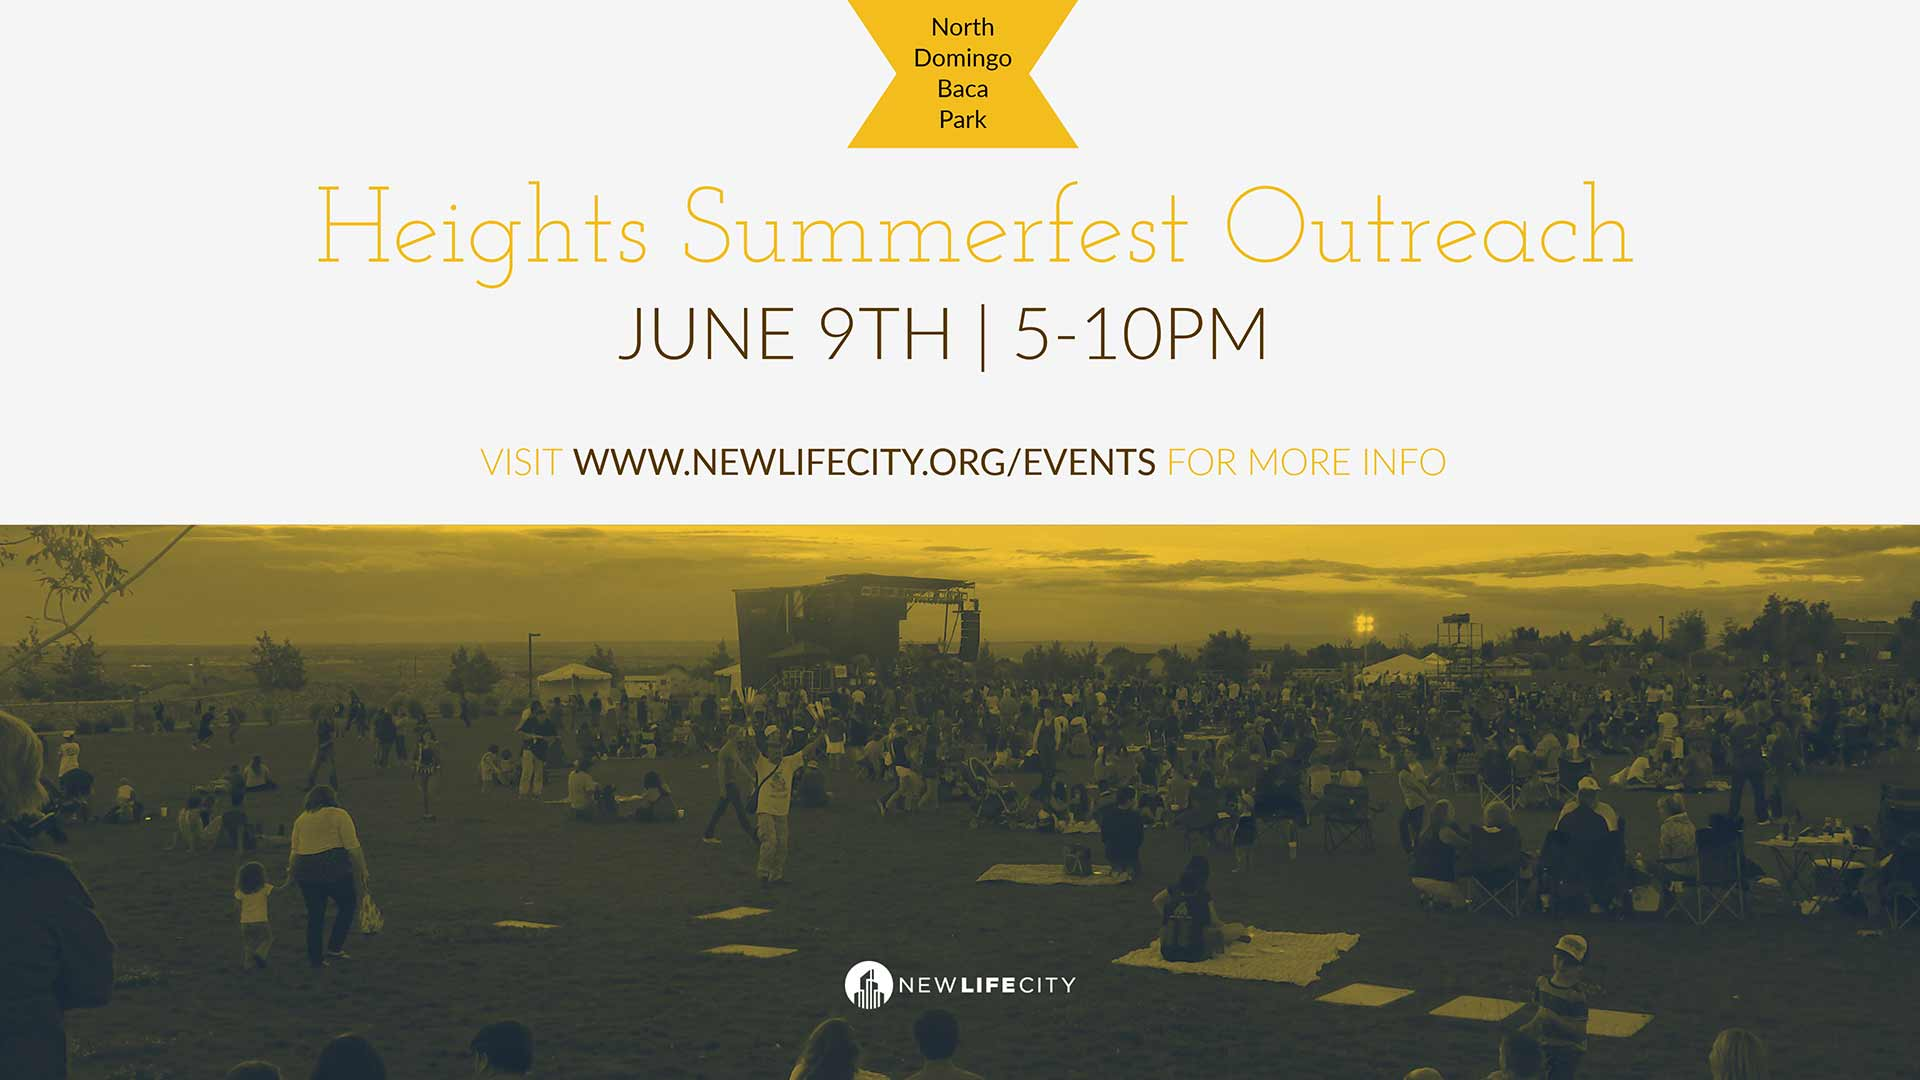 Heights Summerfest Outreach sm.jpg